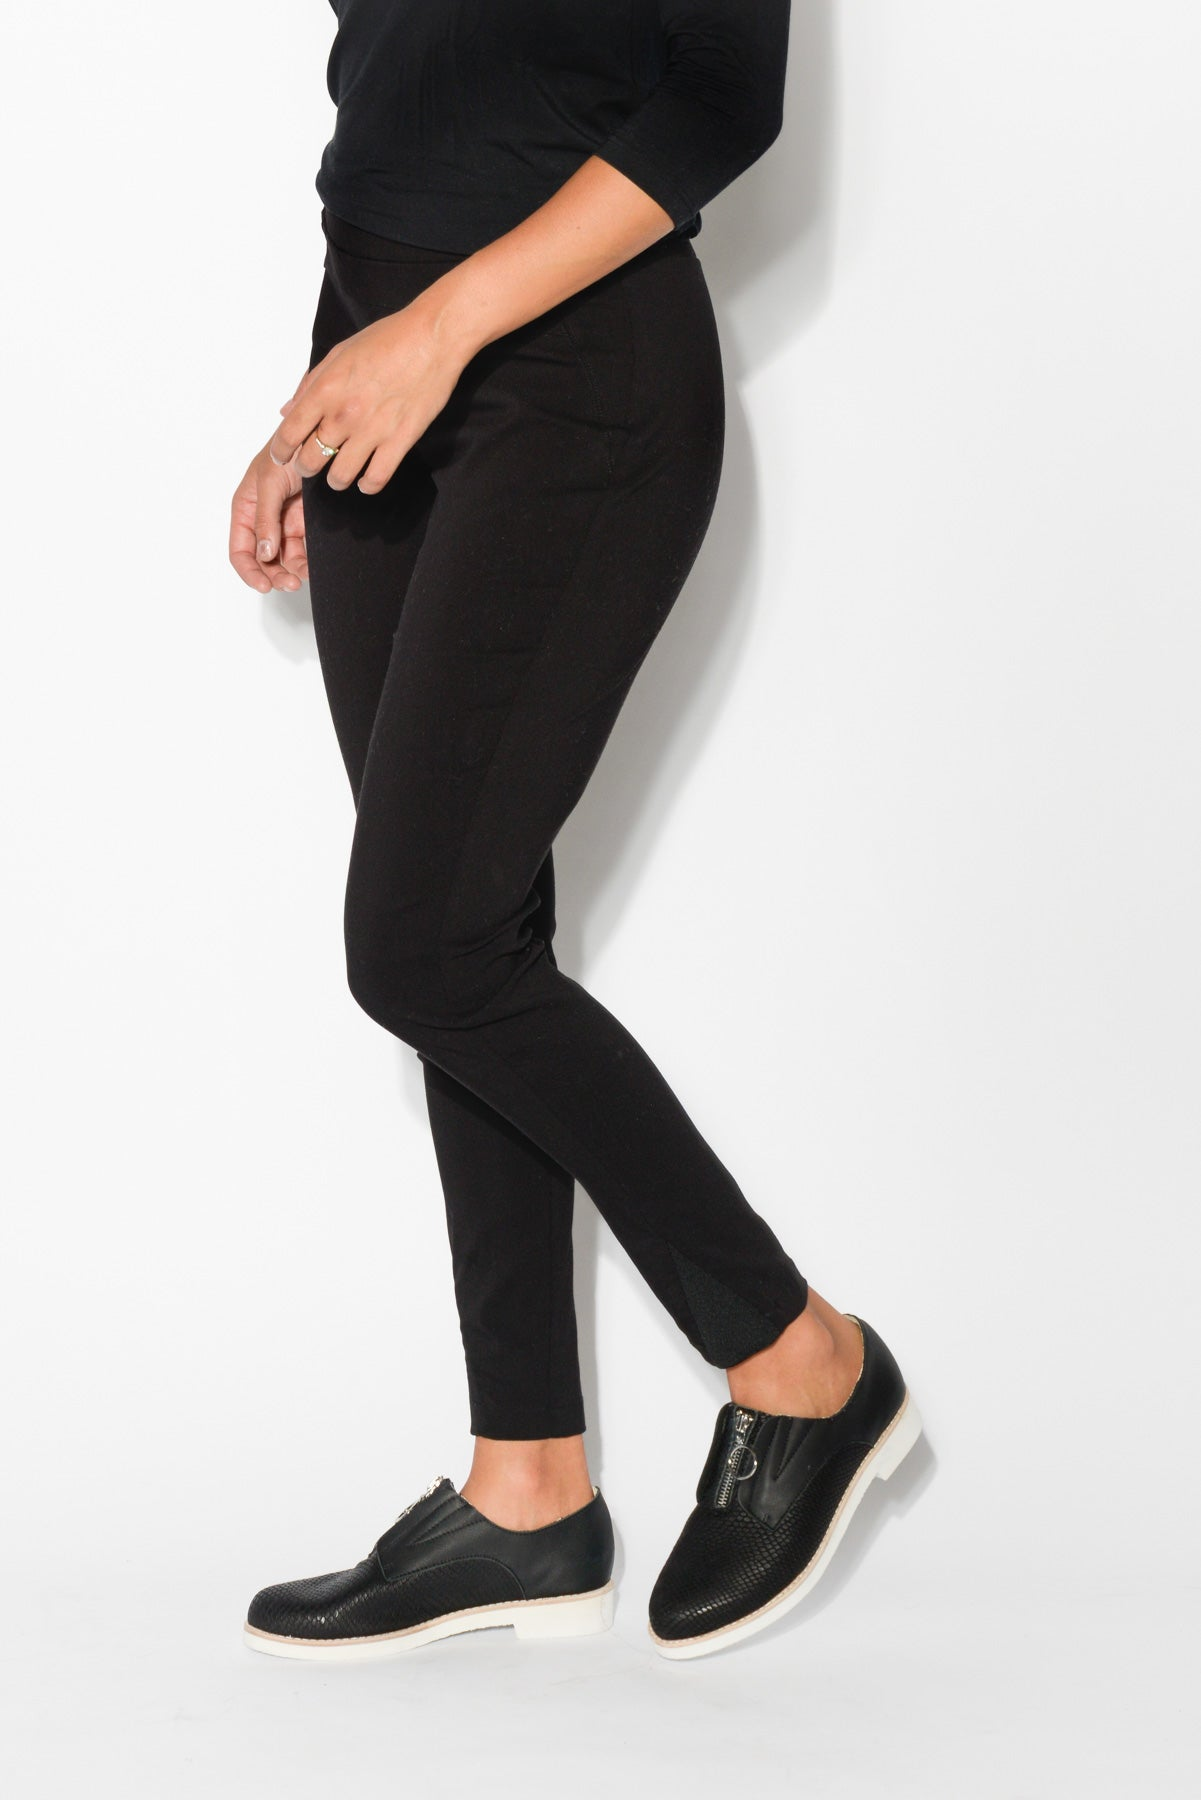 Black Straight 7/8 Pant - Blue Bungalow